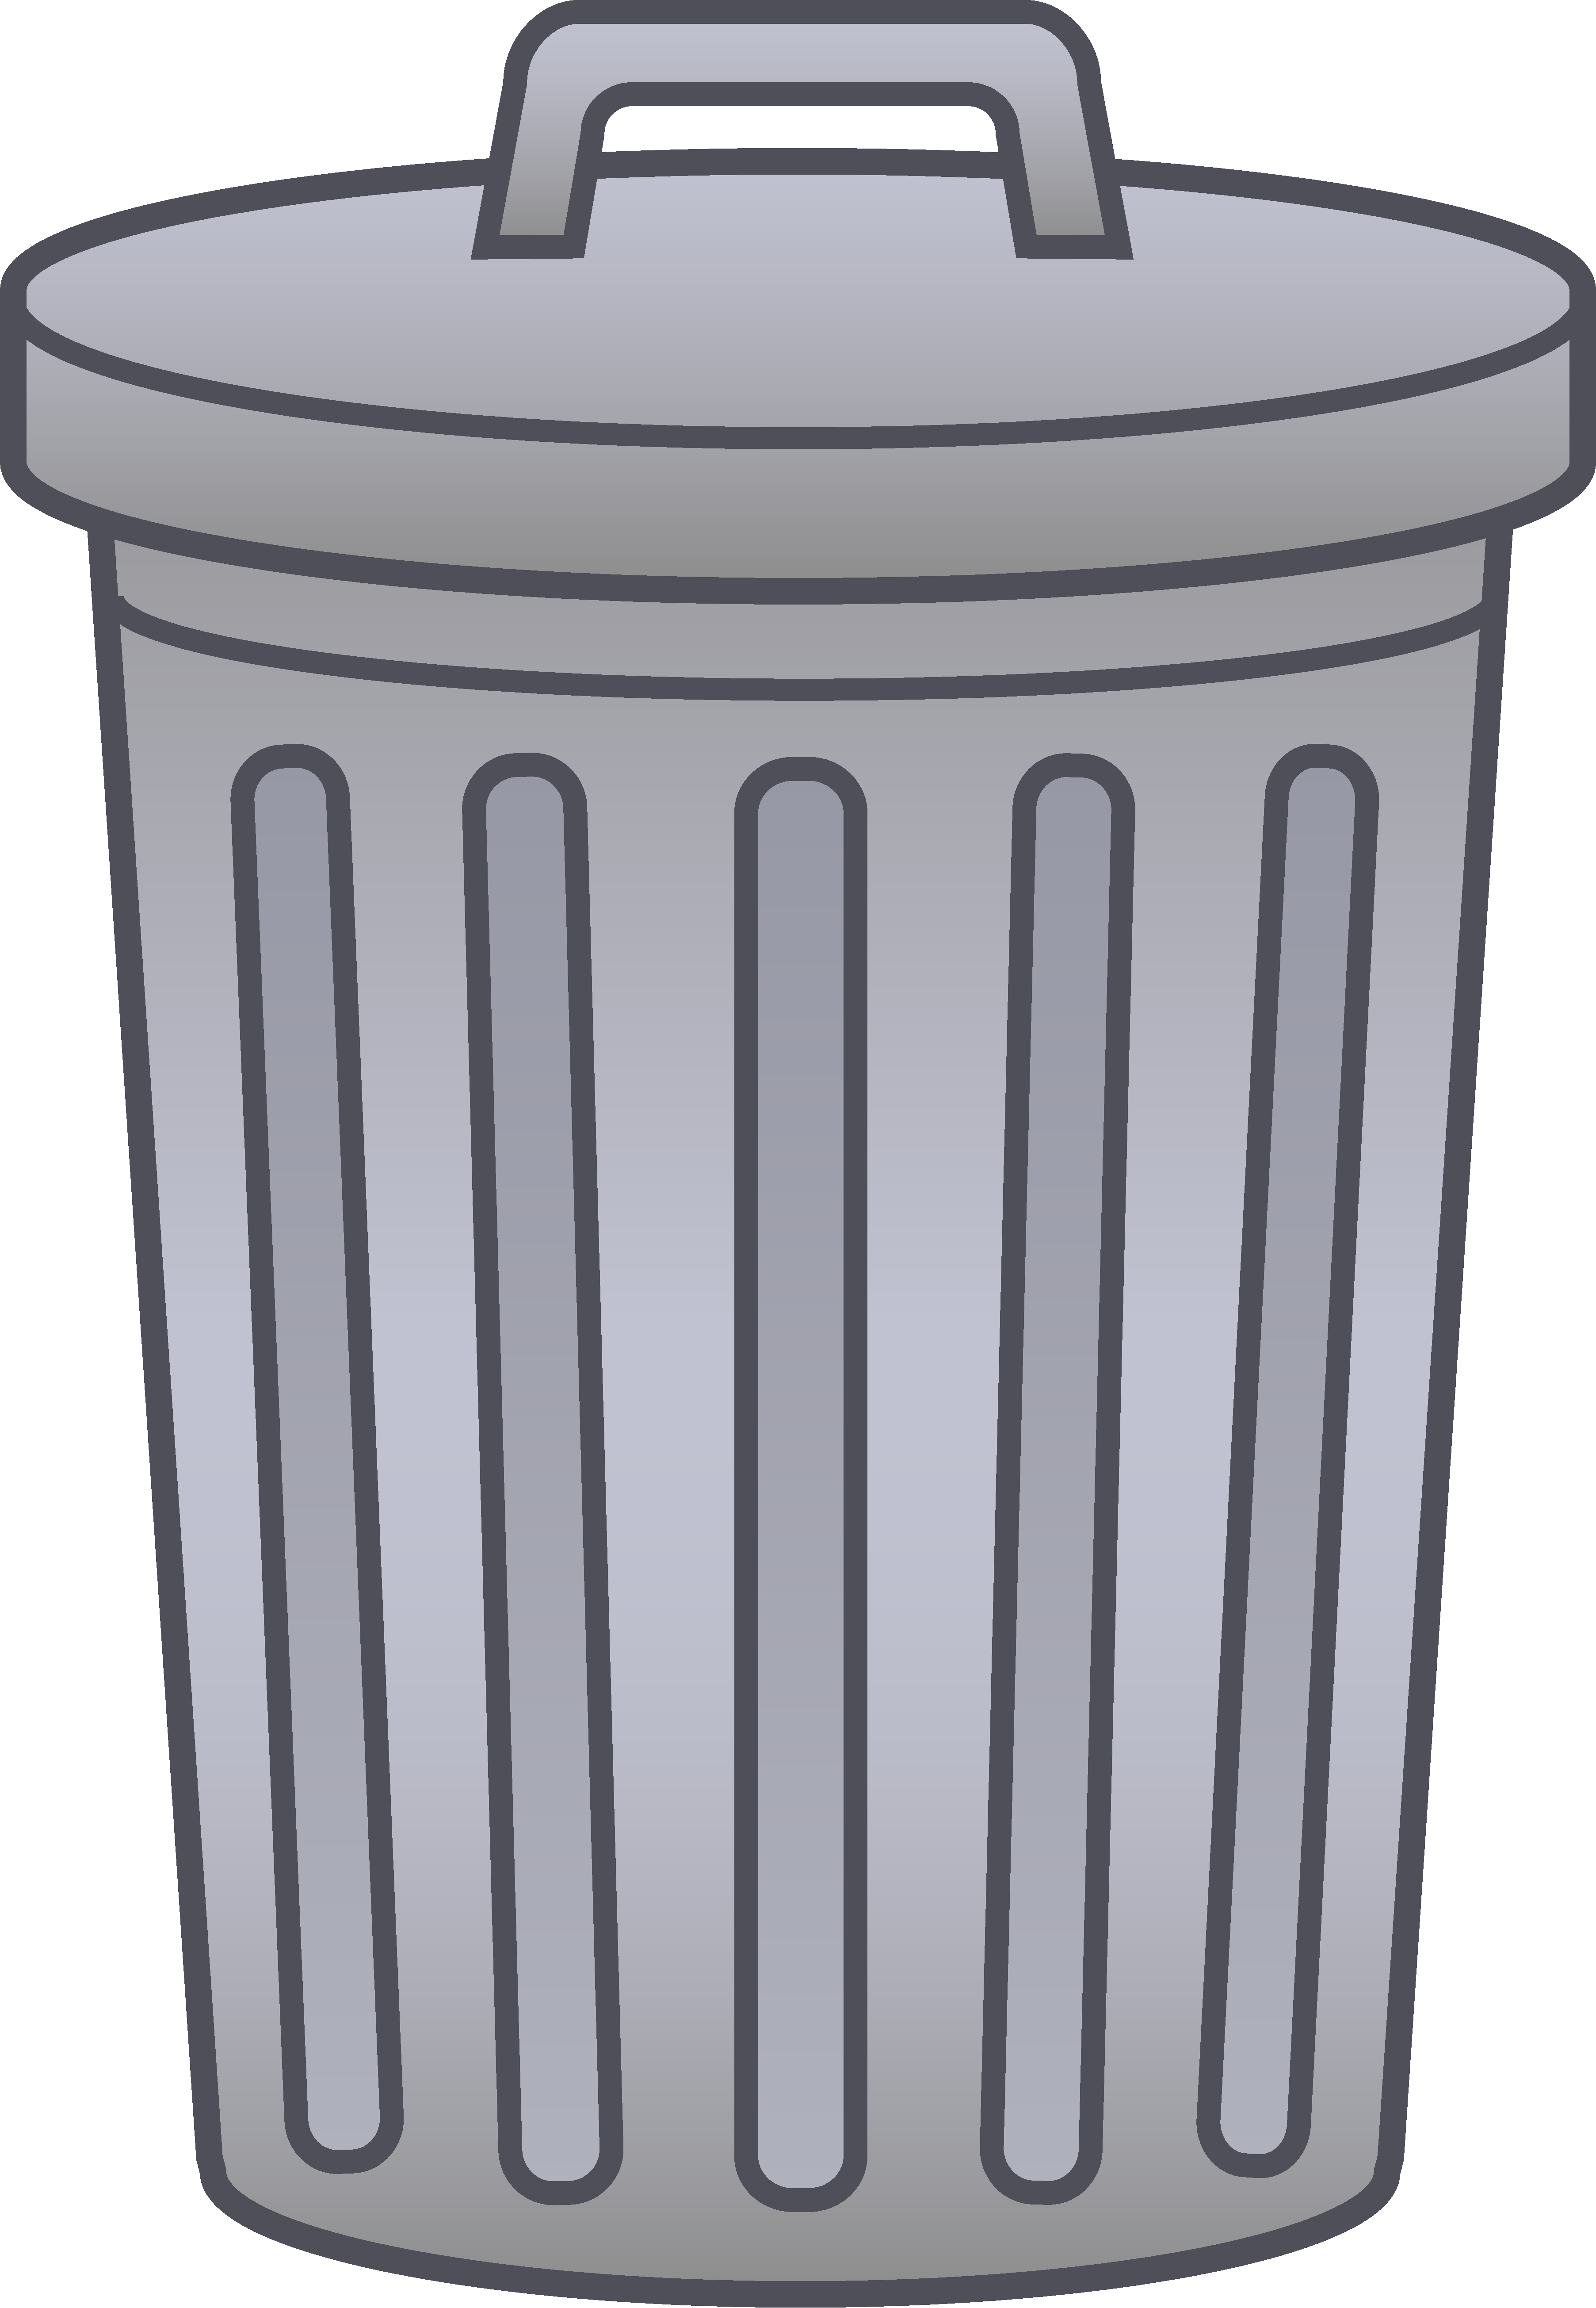 trash can clip art sweet clip art rh m sweetclipart com free clipart garbage can trash can clipart